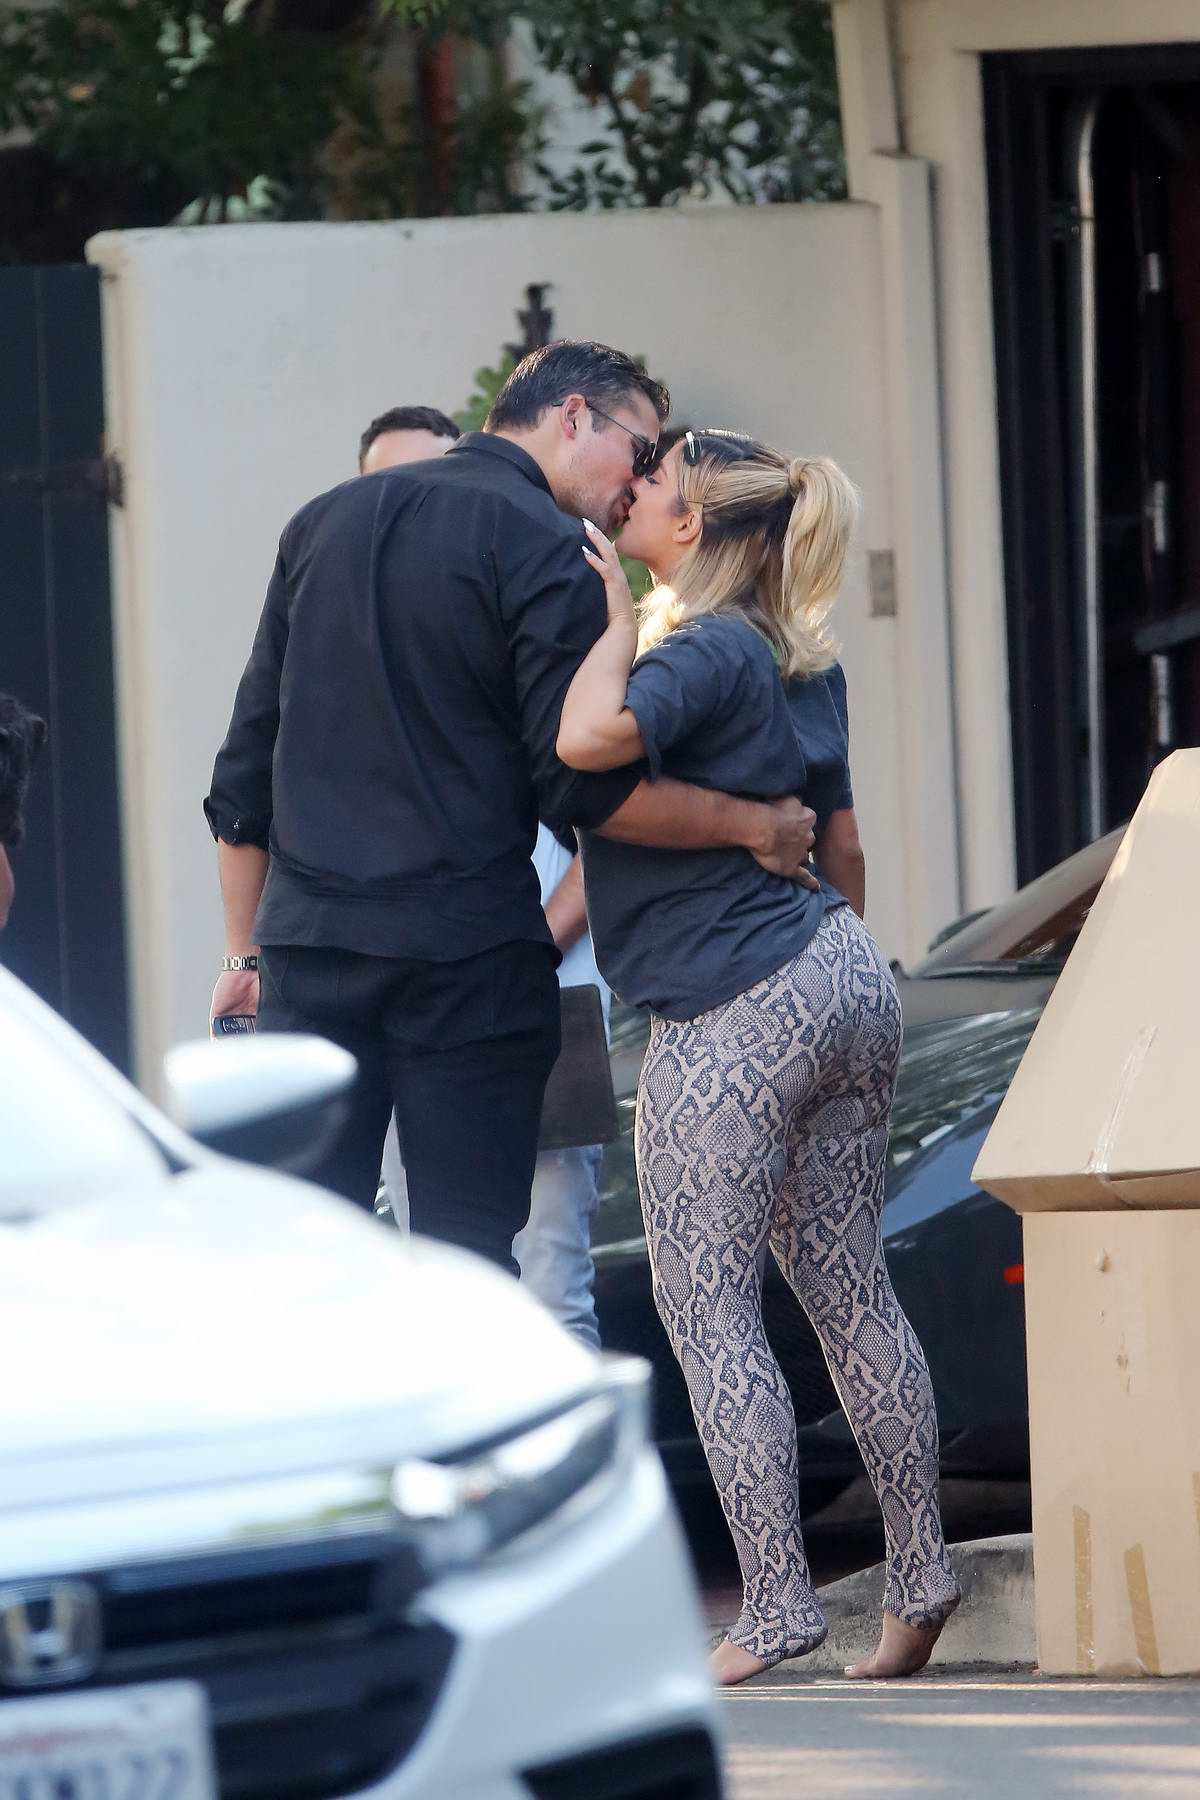 Bebe Rexha shares a kiss with new boyfriend Keyan Safyari as she gets a new Ferrari delivered to her home in Los Angeles